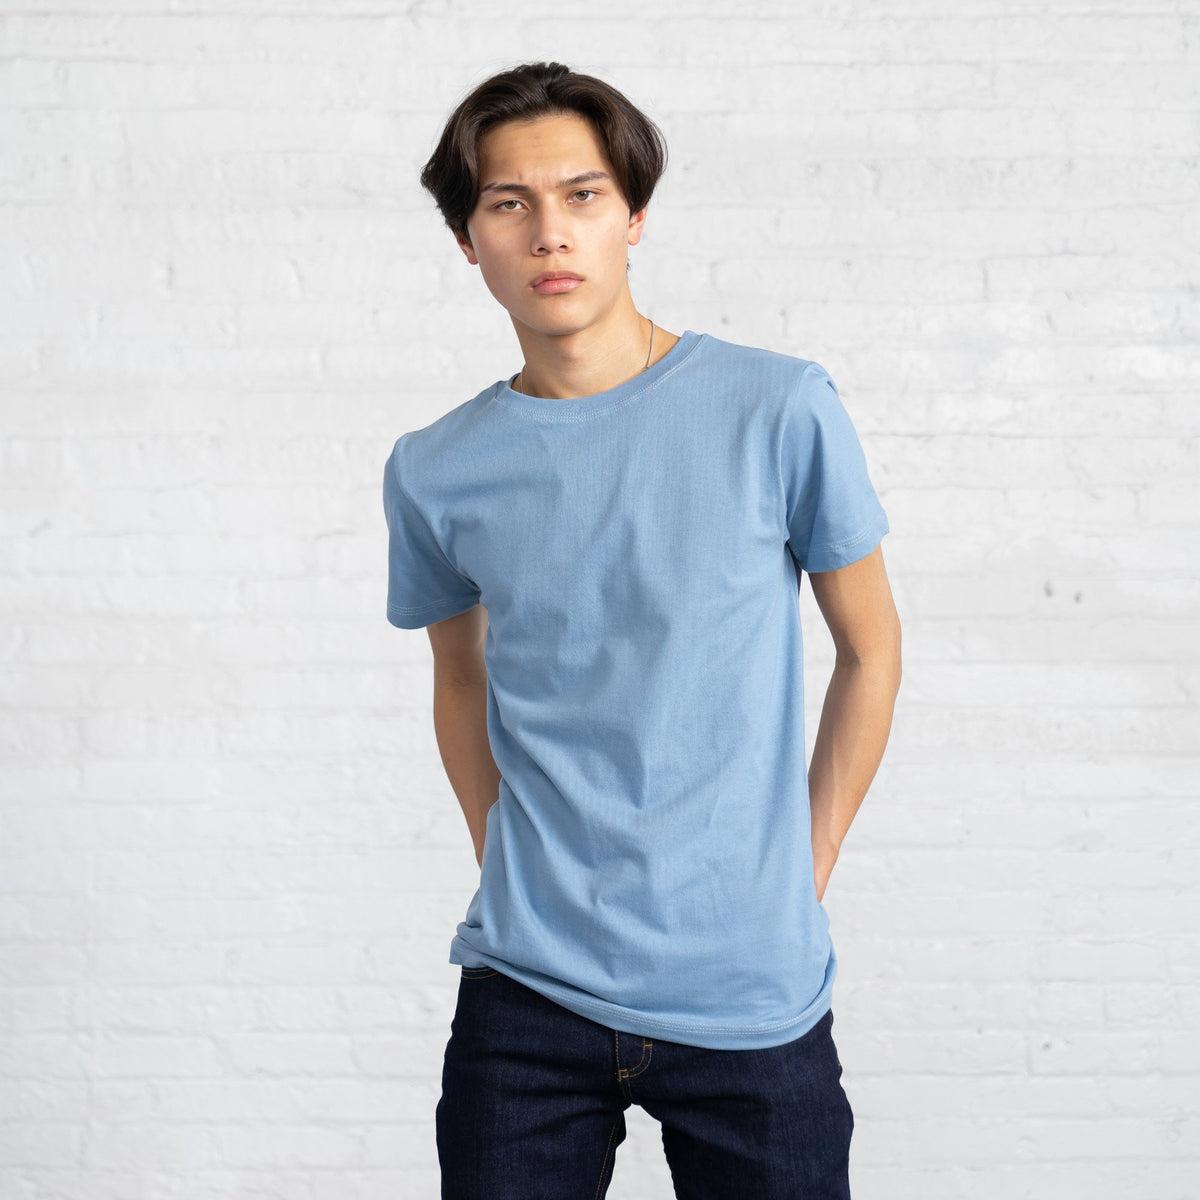 Color:Light Blue Fitted Combed Cotton Men's T-shirts